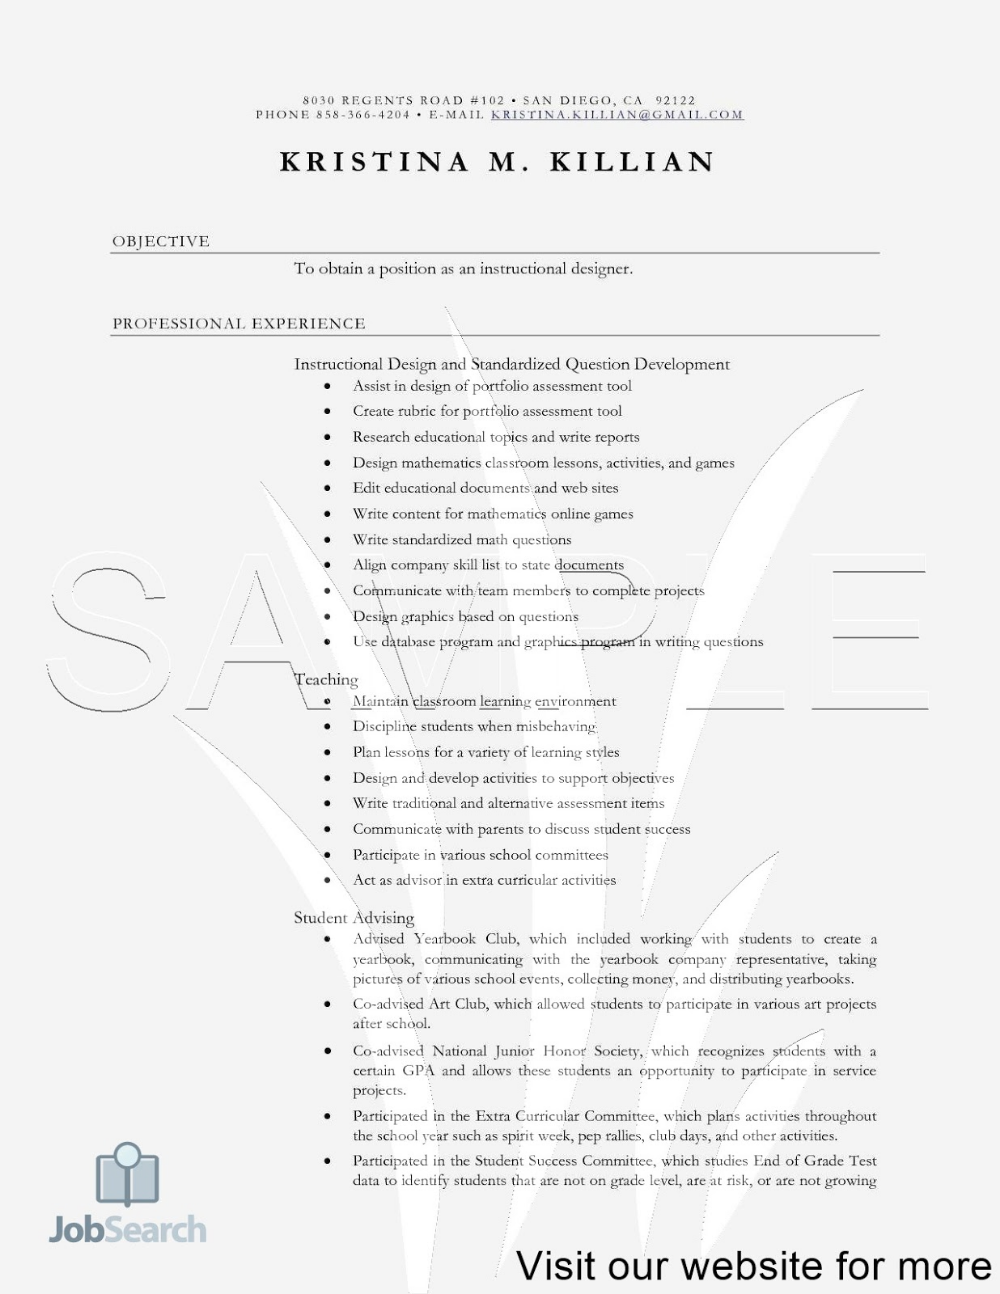 Resume Sample Format in Word for Student 2020 resume